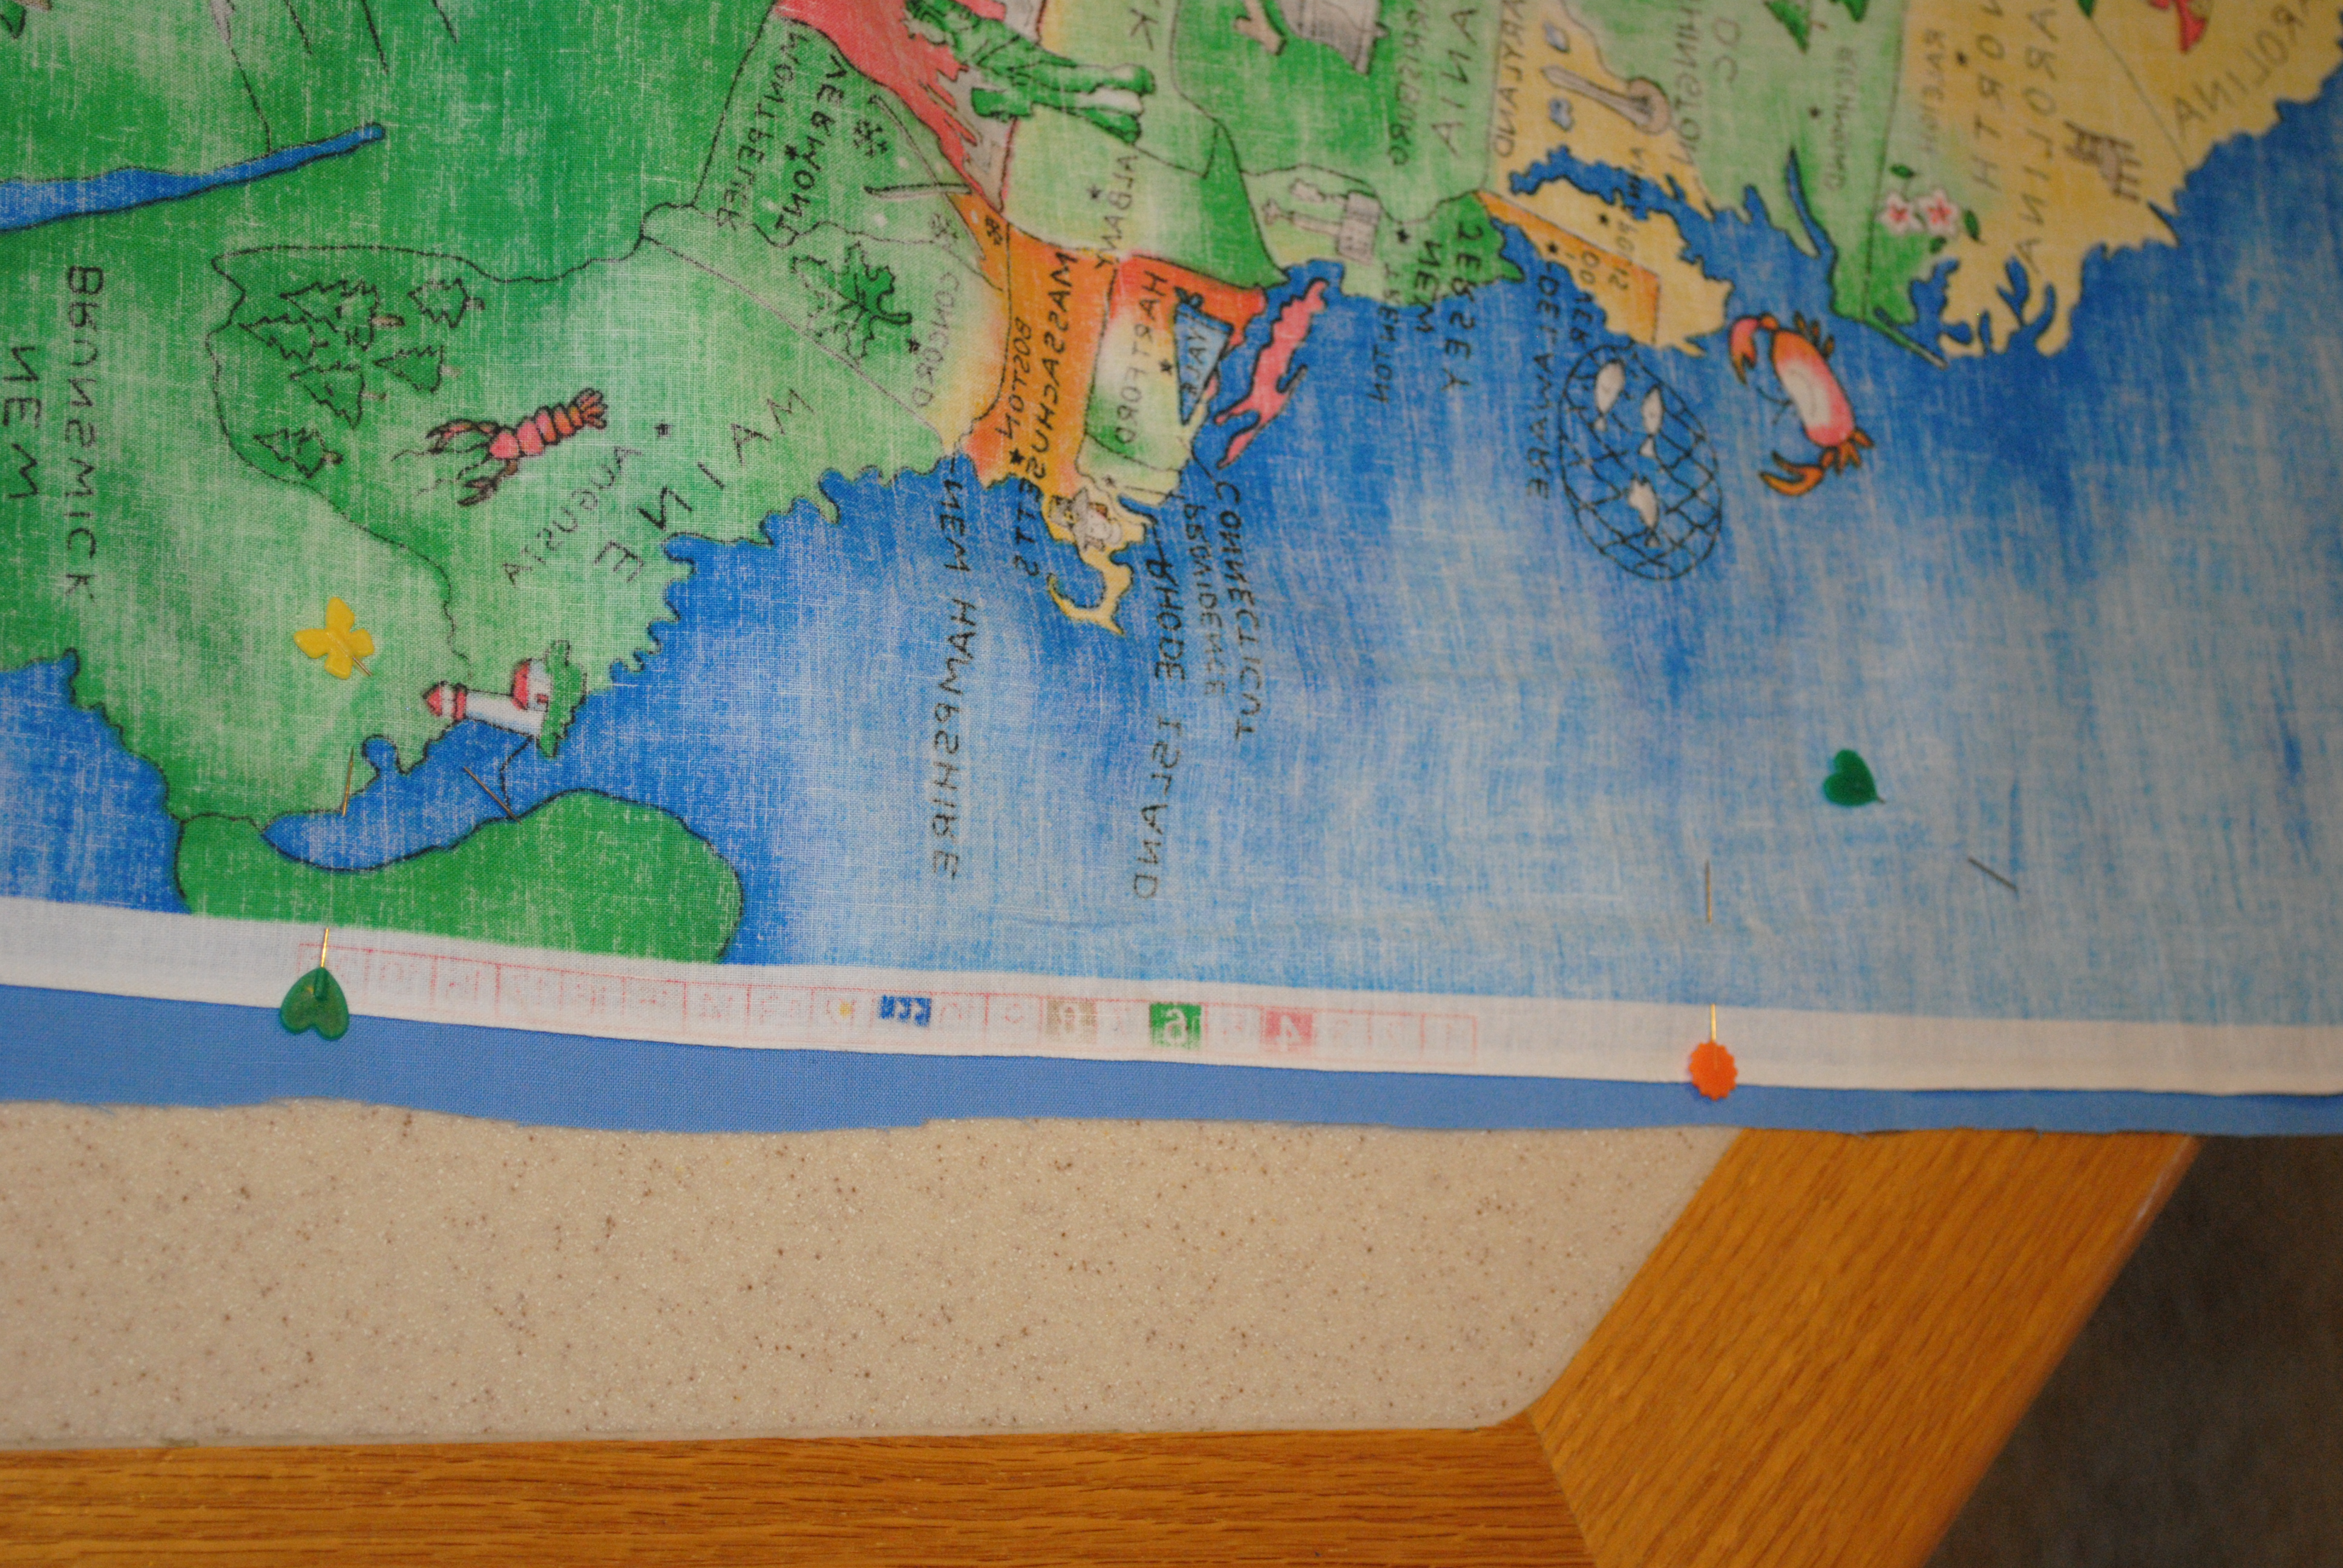 Homeschool diy how to sew a world or us map for your homeschool homeschool diy how to sew a world or us map for your homeschool free homeschool deals gumiabroncs Image collections